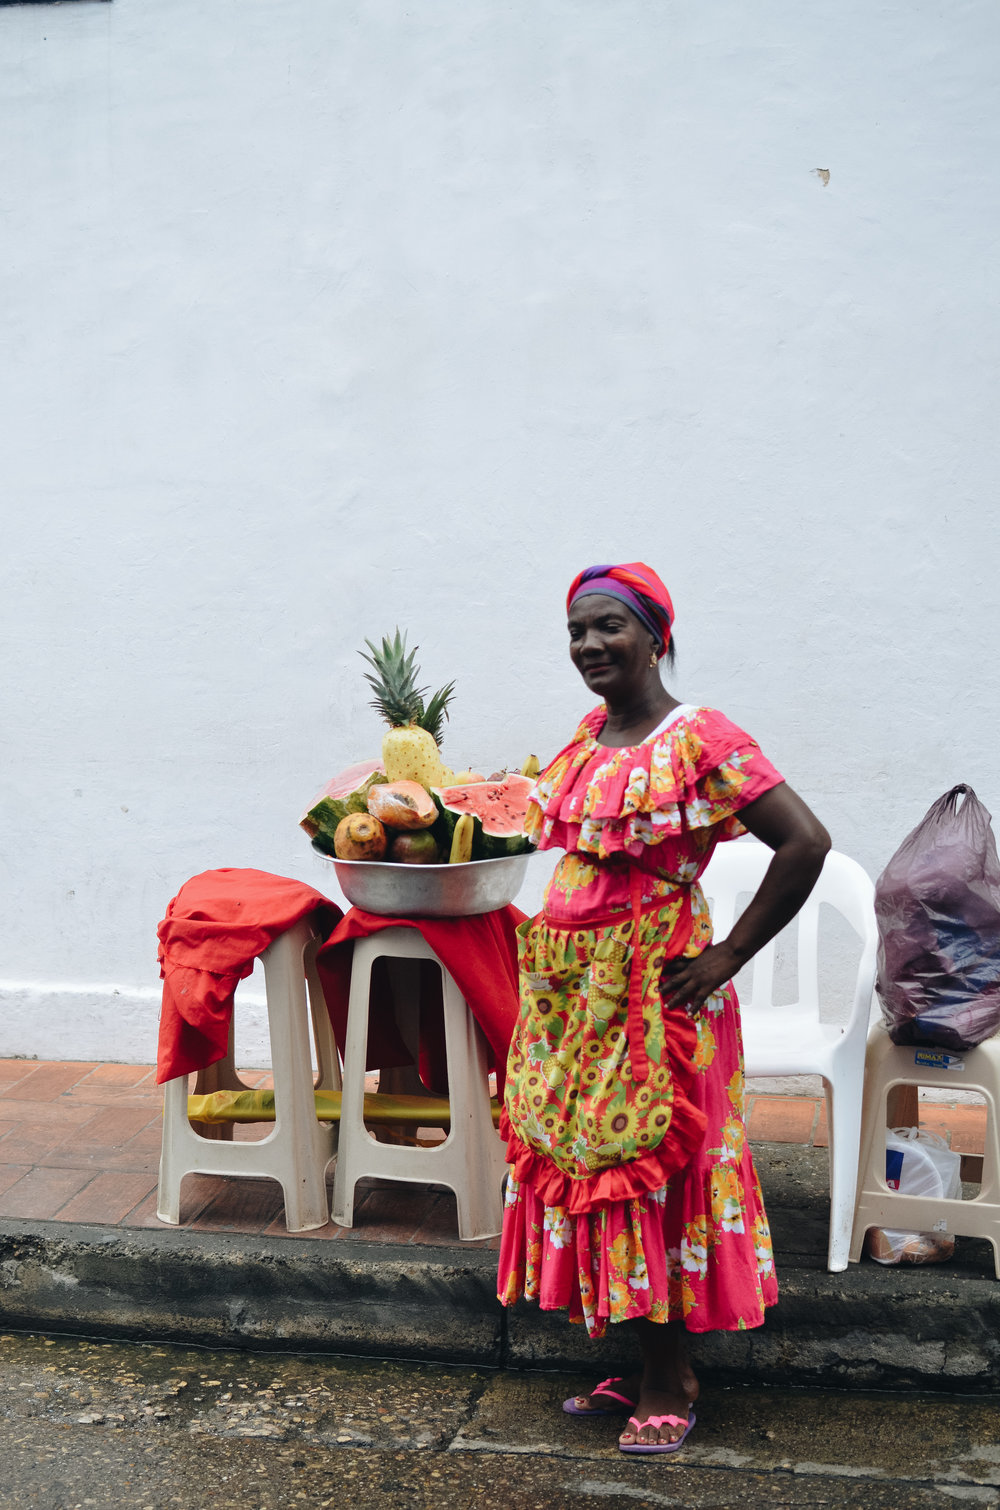 the city is known for the fruit sellers with colorful costumes. unfortunately now it seems the ladies are more of a tourist attraction for photo-ops, rather than a part of the city's fabric. we noticed this in a lot of countries.